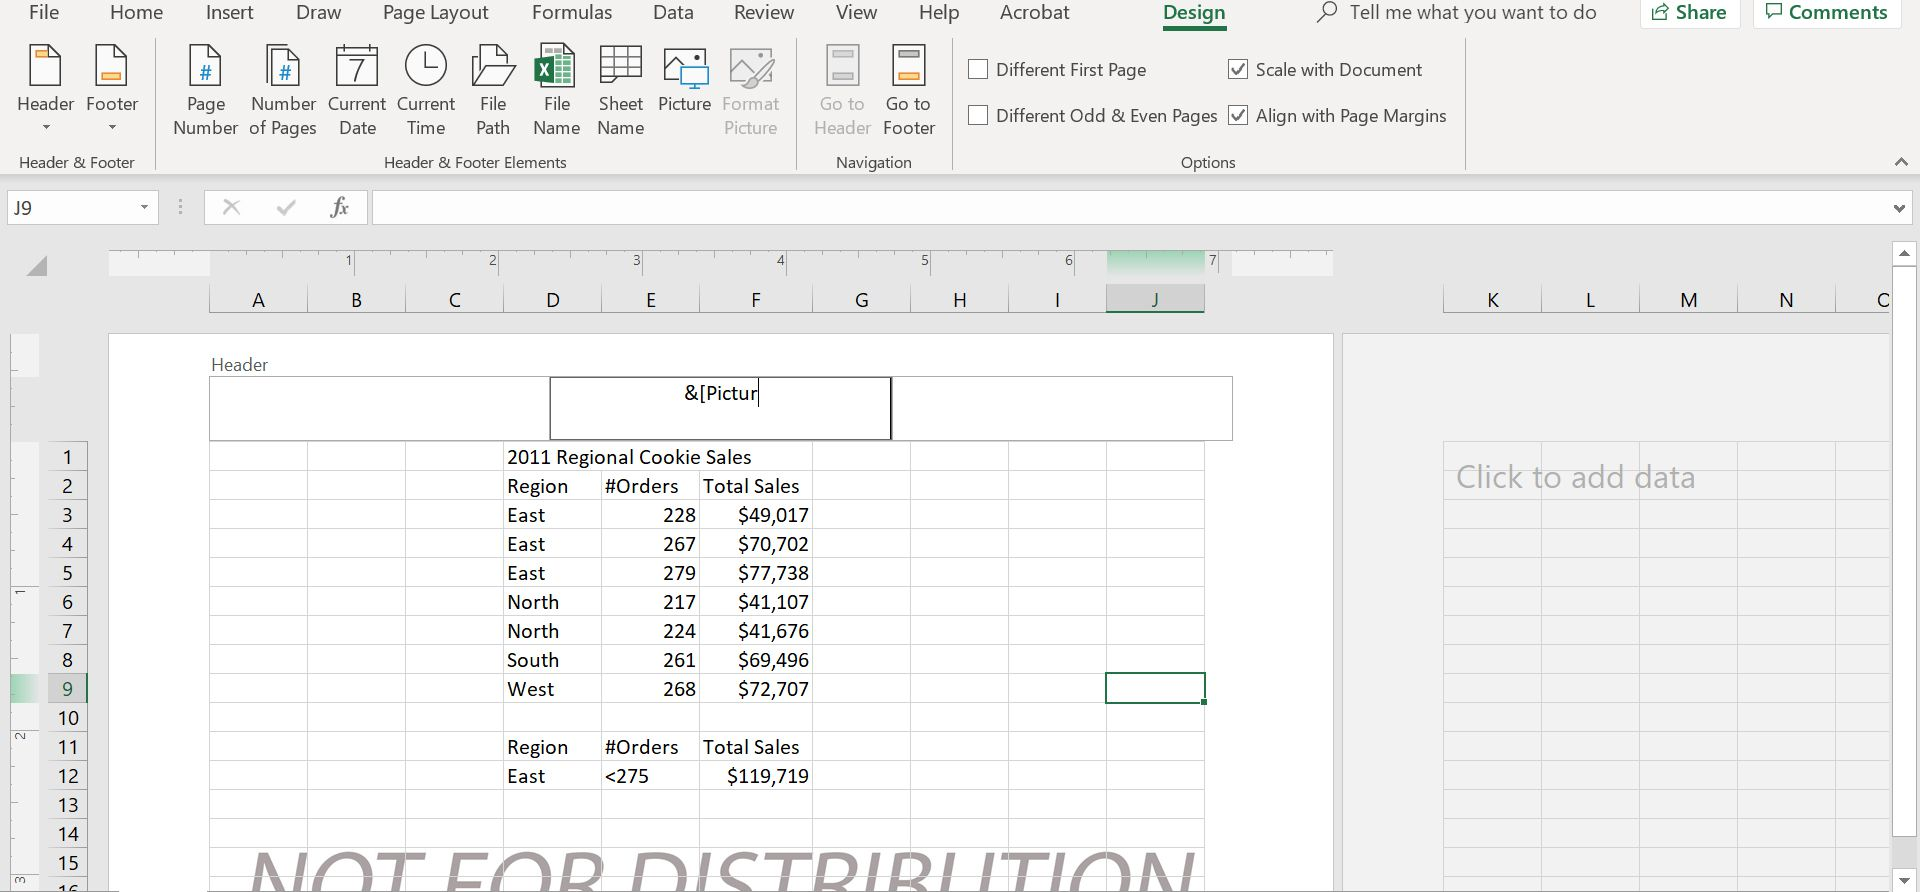 How To Insert A Watermark On An Excel Spreadsheet